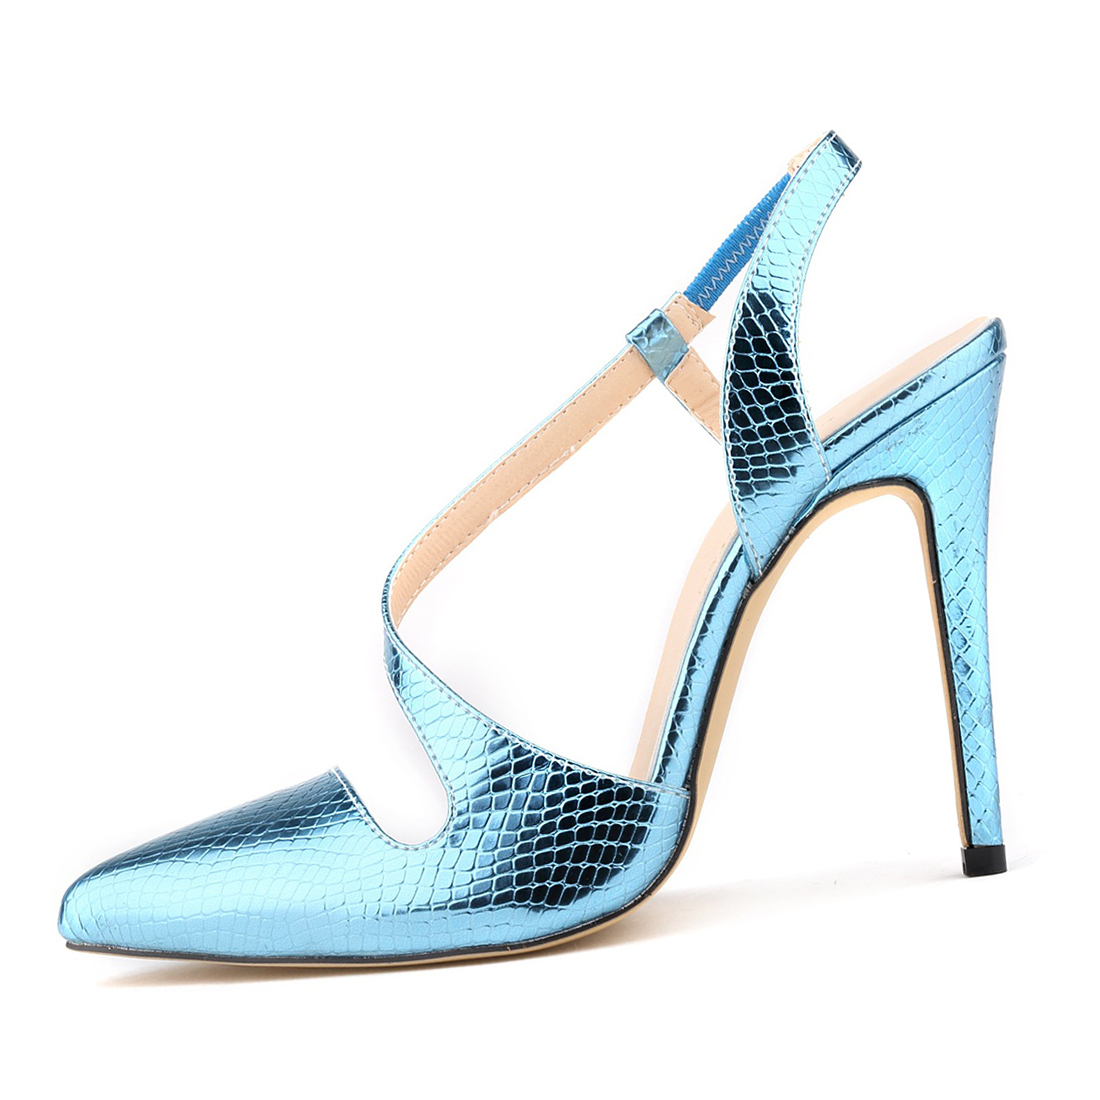 ASDS Classic Fashion Women crocodile skin Pumps summer spring Pointed Toe High Heels Sexy Leather Women Shoes sandals Pumps<br><br>Aliexpress